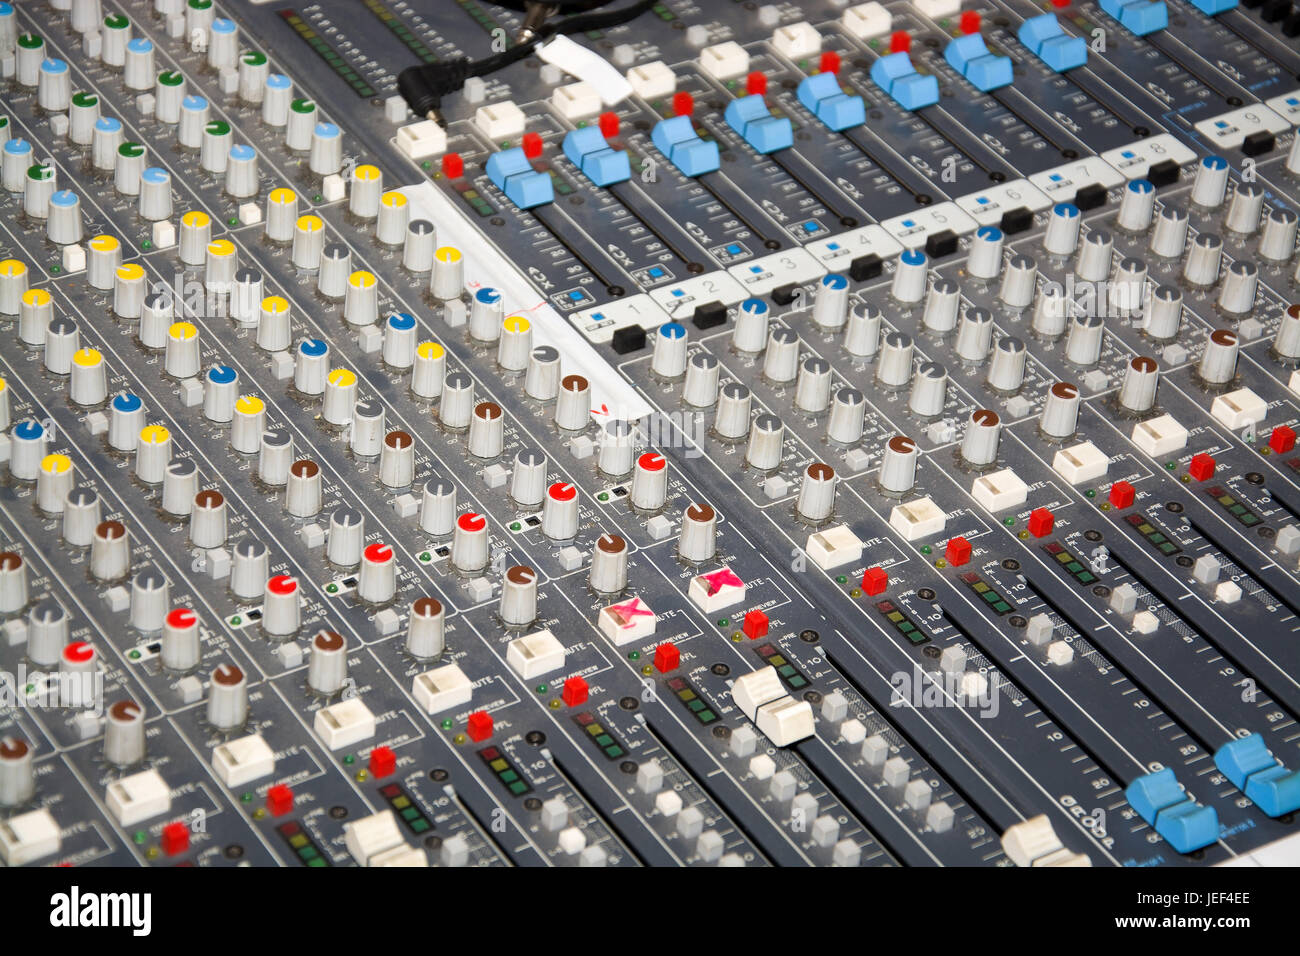 Recording studio, mixing writing desk, close-up,, Tonstudio, Mischpult, Nahaufnahme, Stock Photo